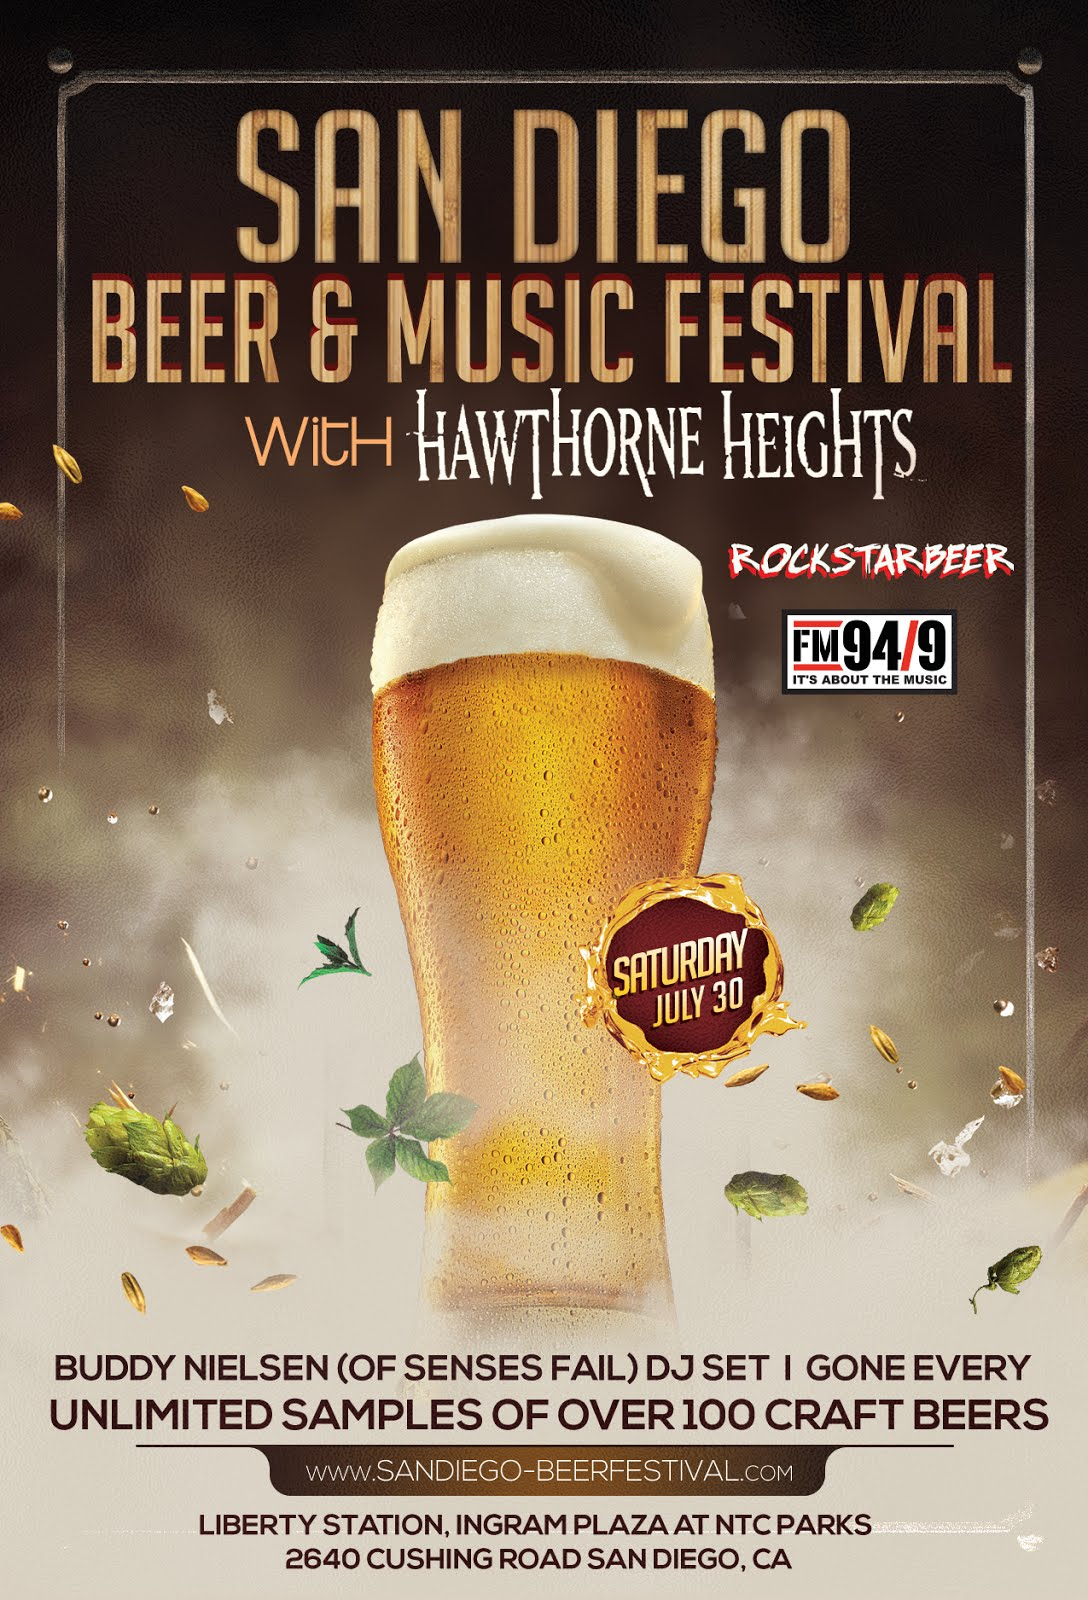 Save on passes & Enter to win VIP tickets to San Diego Beer & Music Festival - July 30